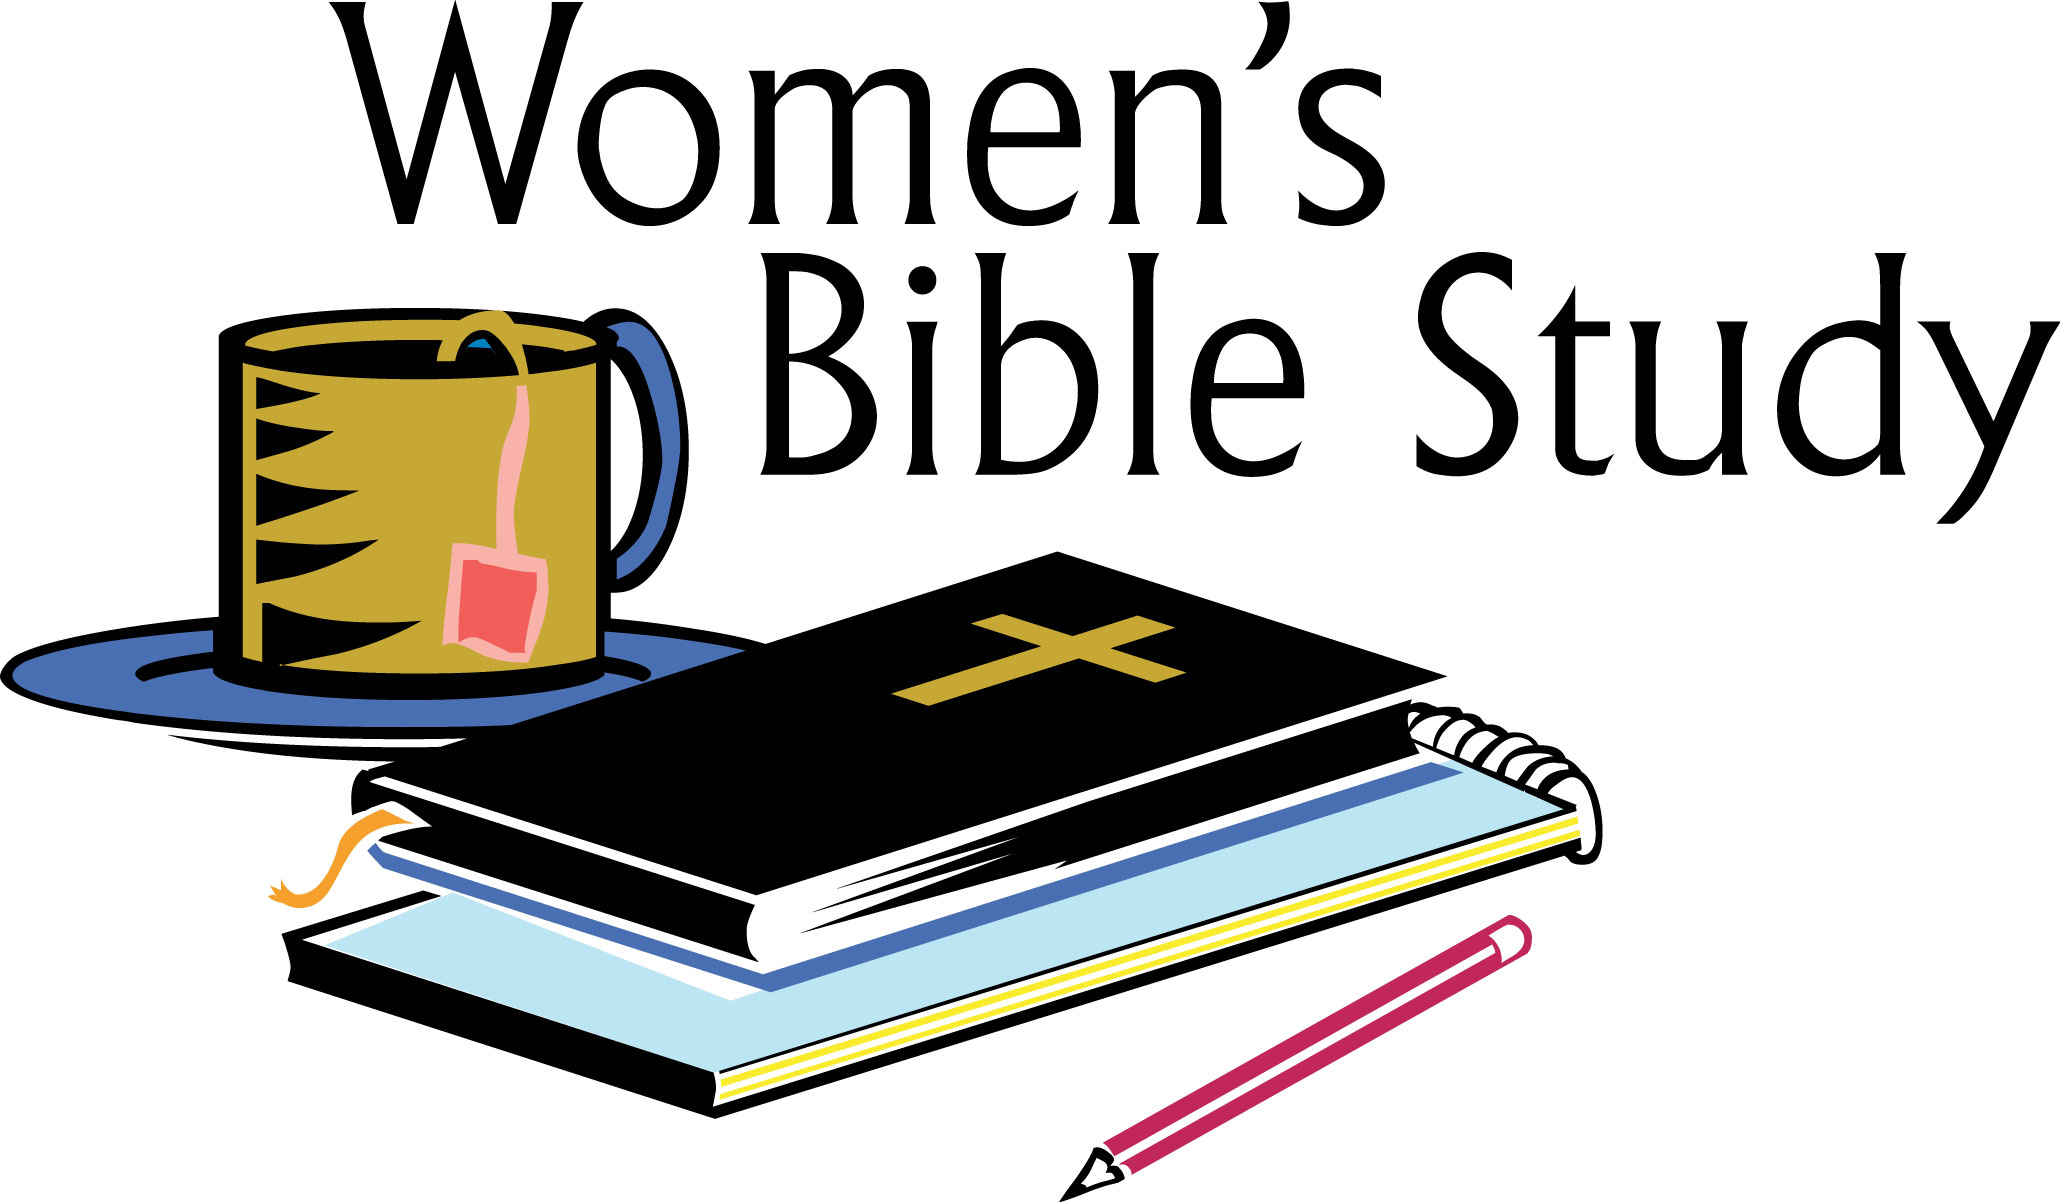 bible study clipart at getdrawings com free for personal use bible rh getdrawings com studying clipart free clipart studying girl